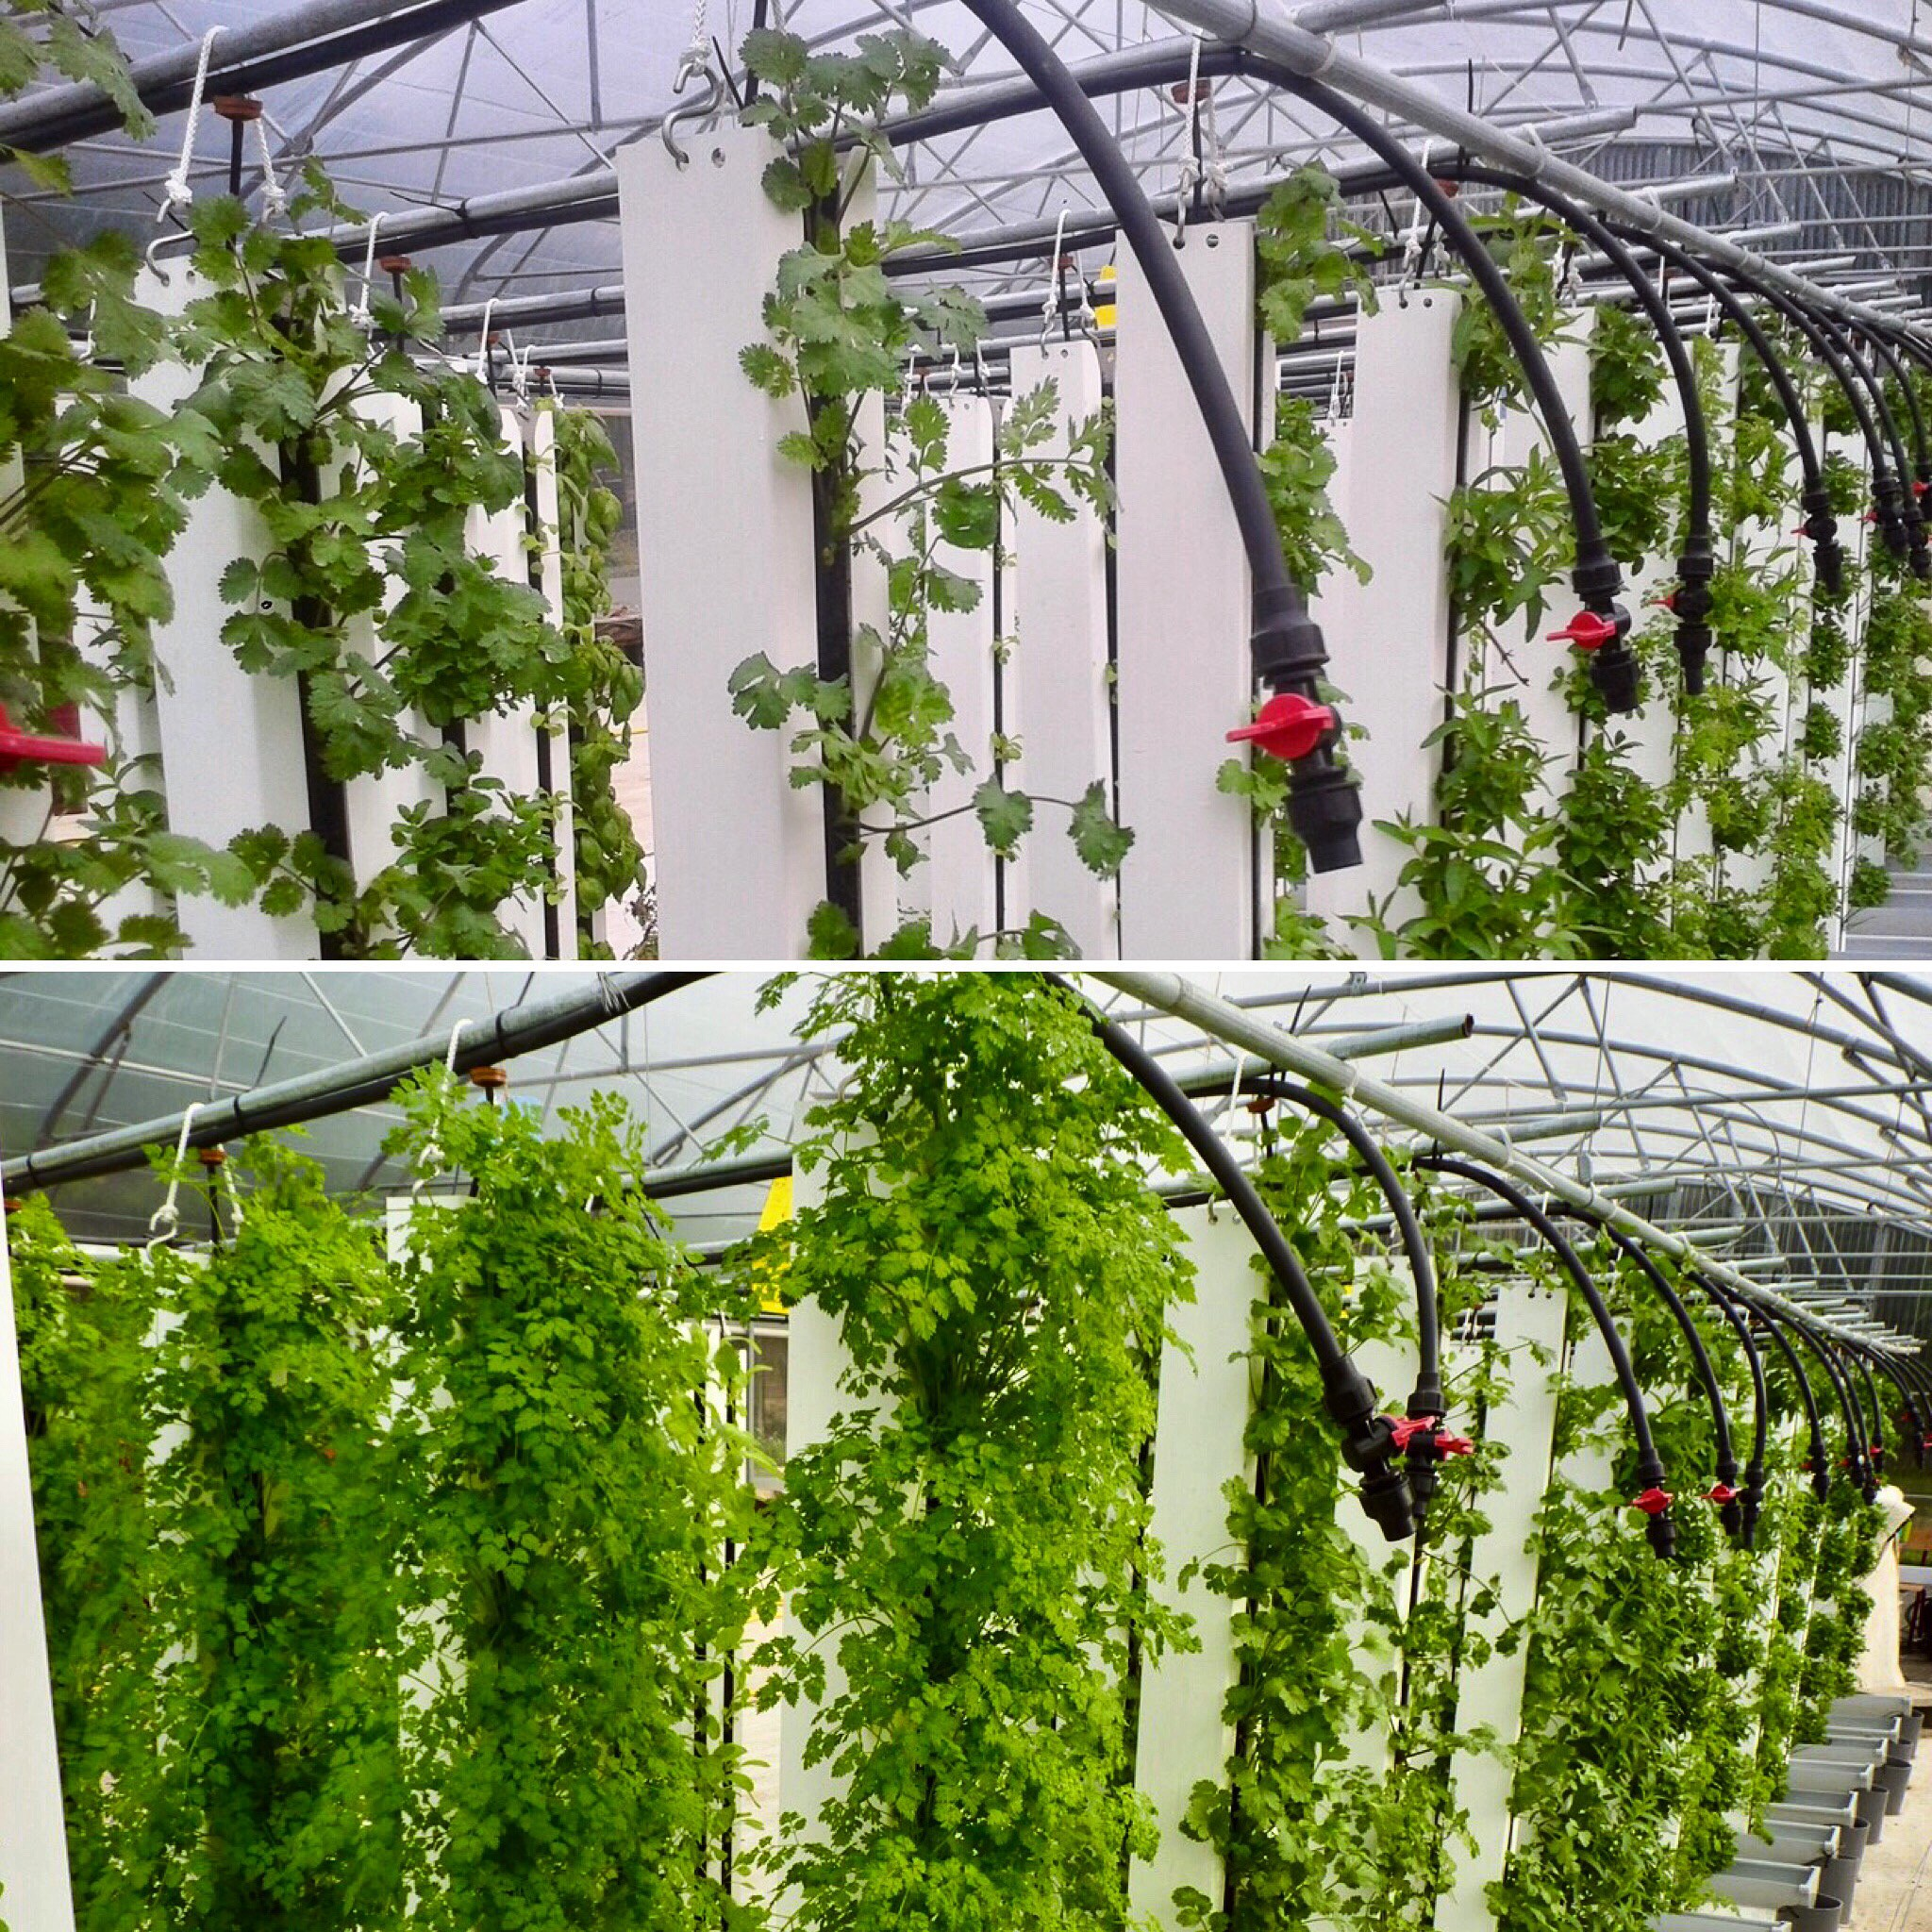 9 Reasons Why Vertical Farms Fail - Bright Agrotech - Medium